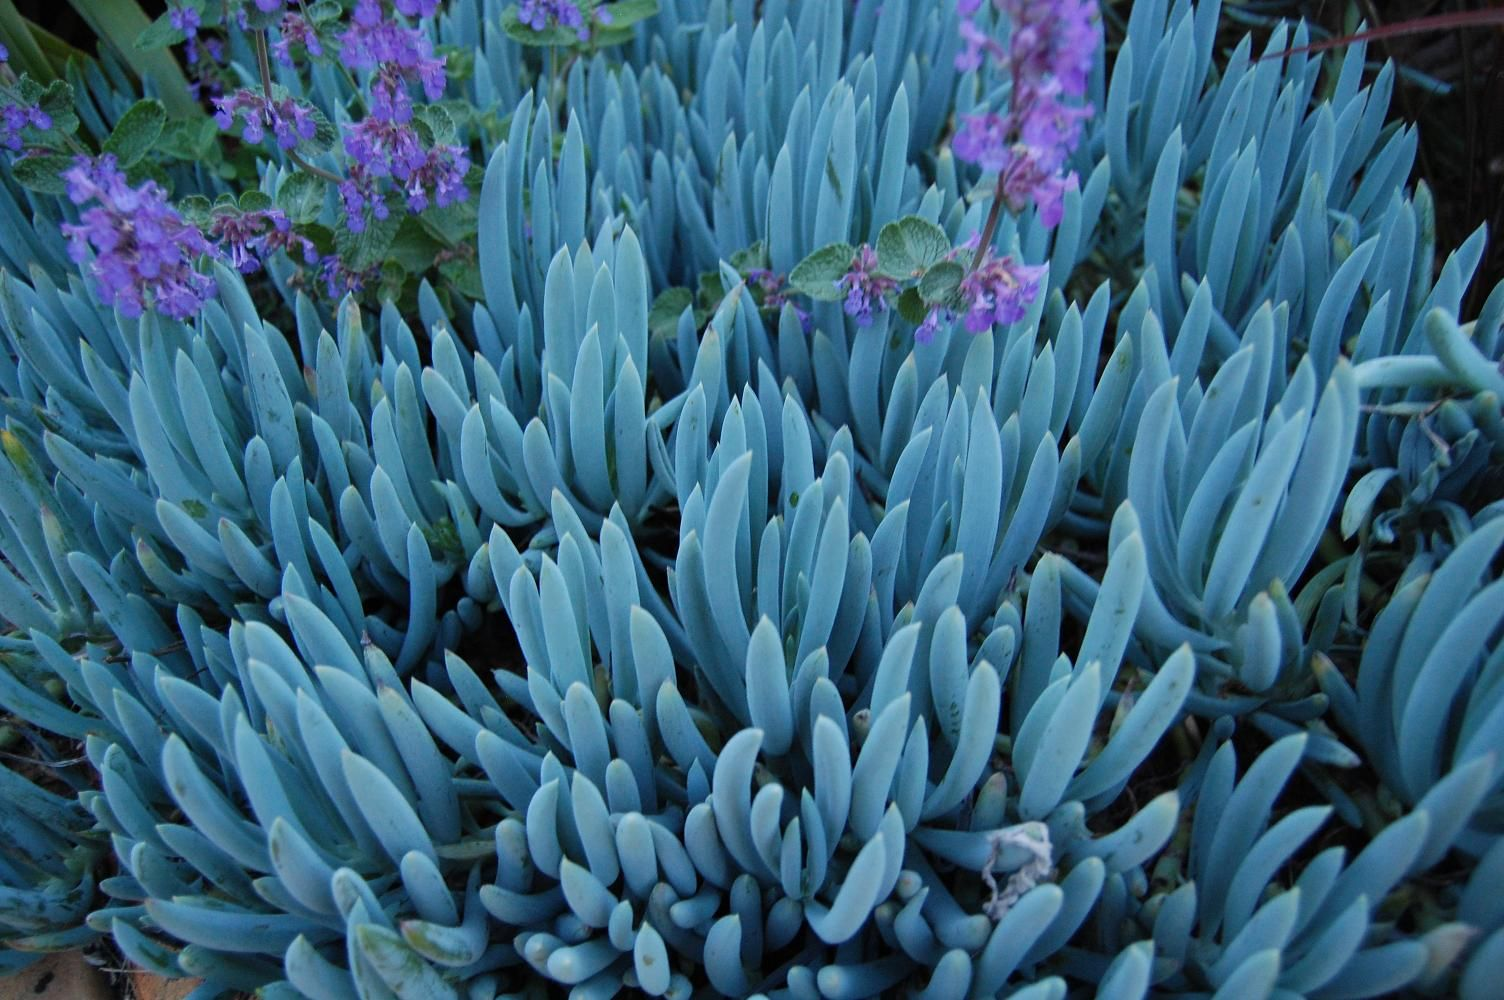 Blue chalk sticks plant - We Have Just Had An Exciting Delivery Of Succulent Arrive Including The Magnificent Blue Chalk Sticks Plant Pictured Above